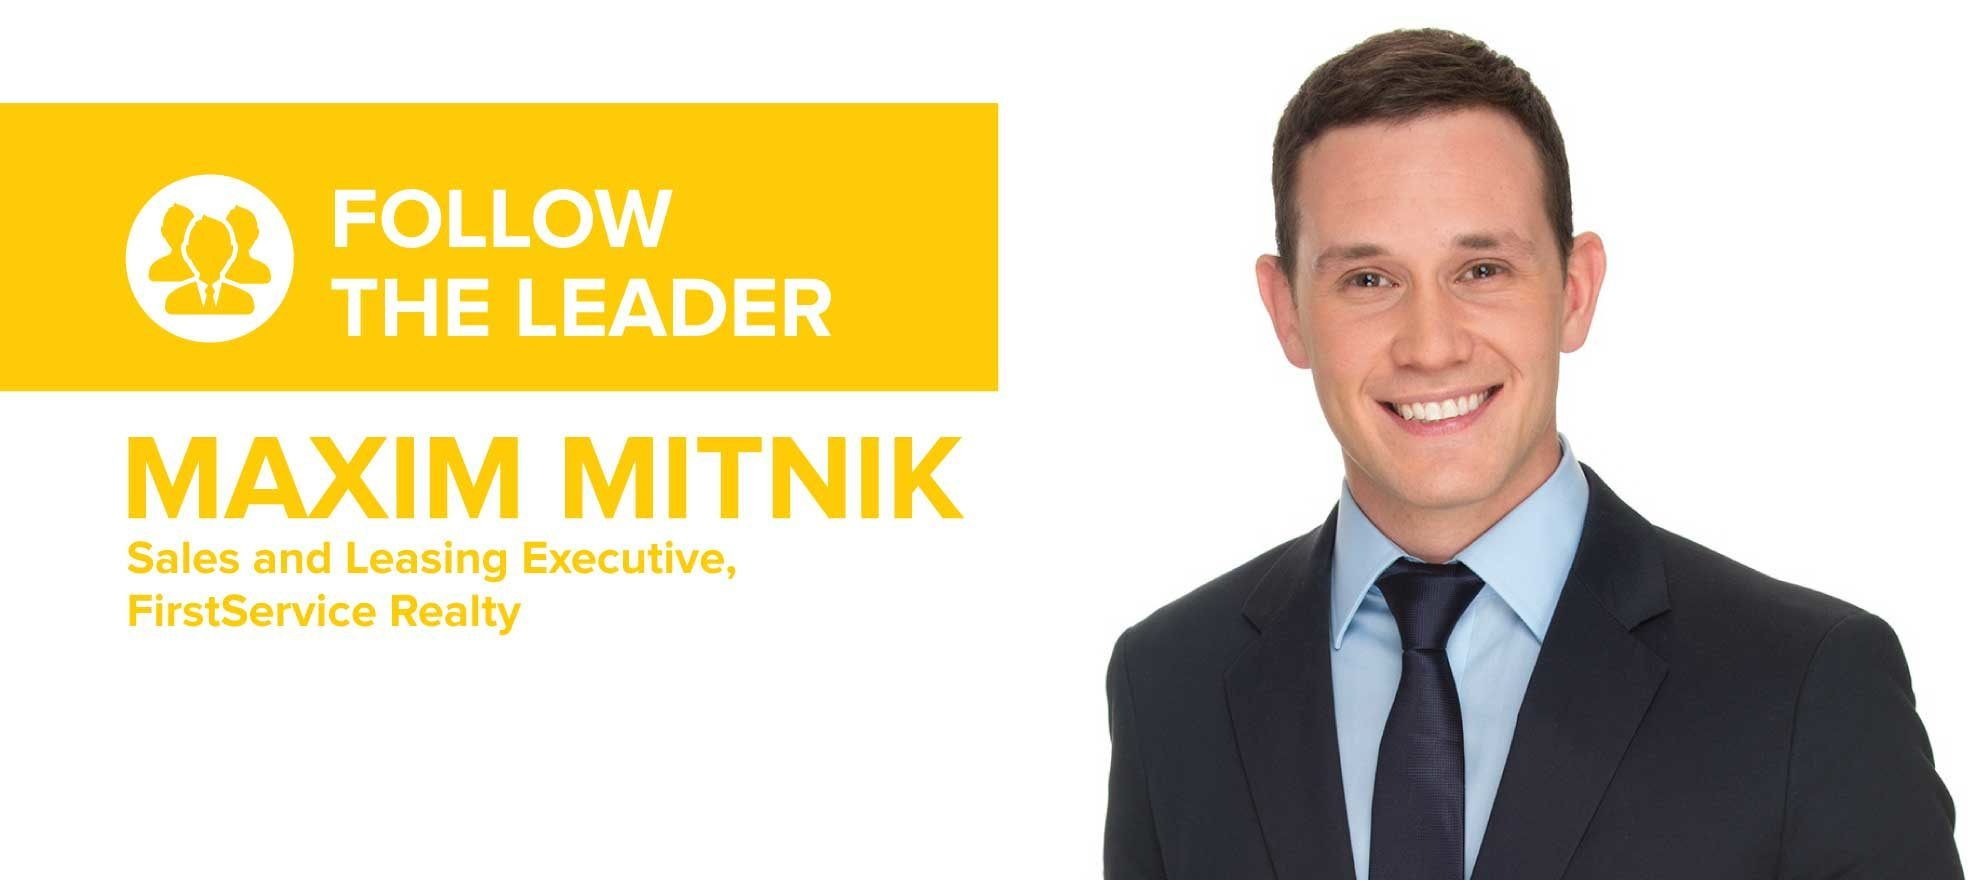 Maxim Mitnik on the little things that set his business apart